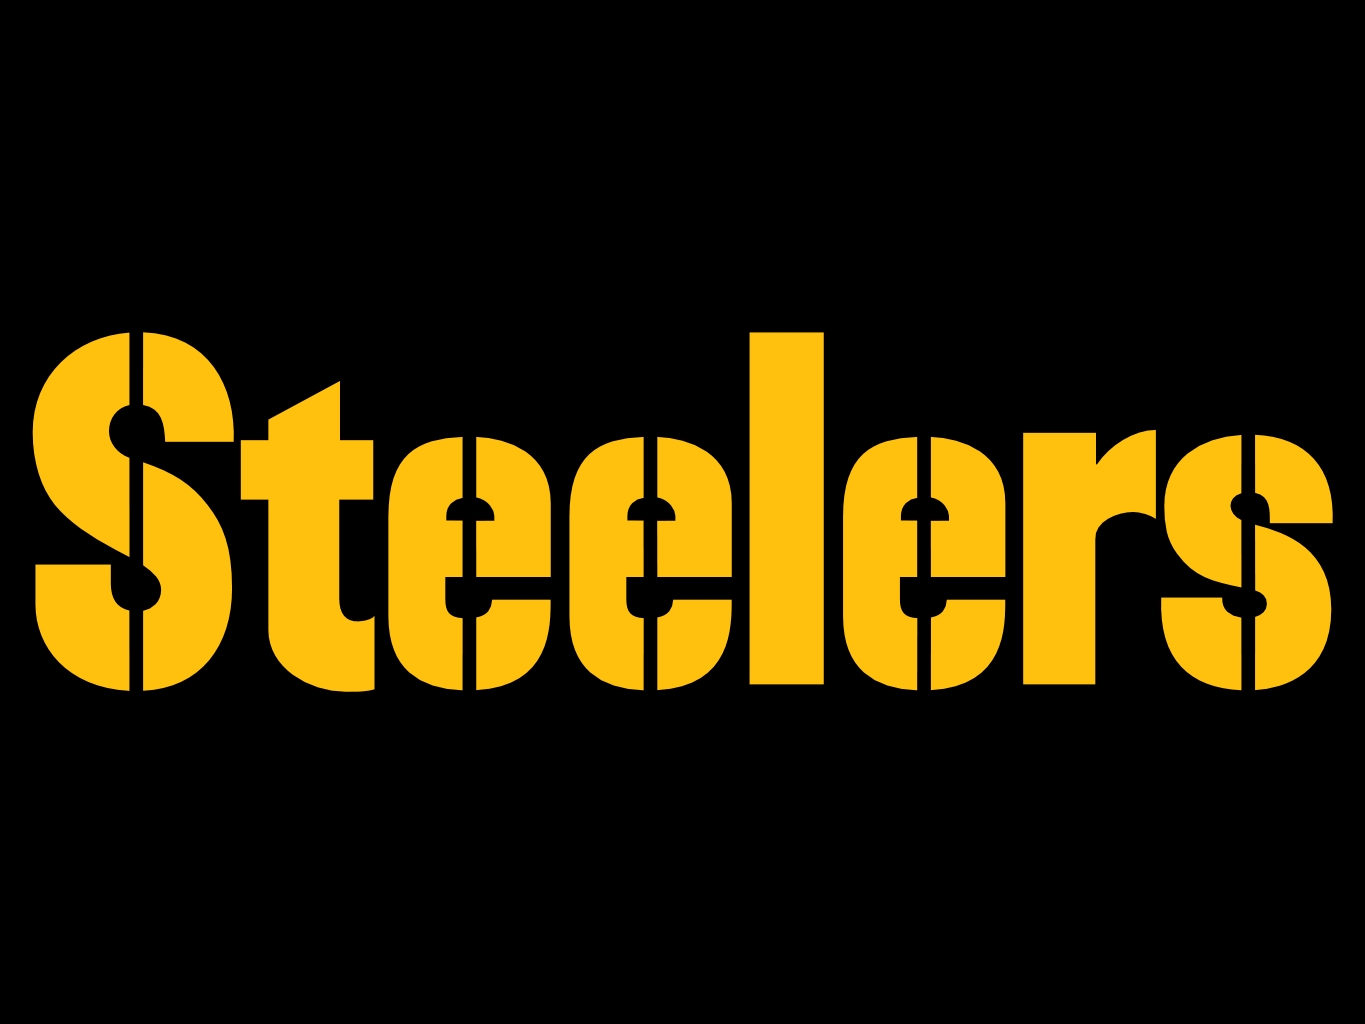 graphic regarding Printable Steelers Logo called Pittsburgh Steelers Symbol N8 free of charge impression